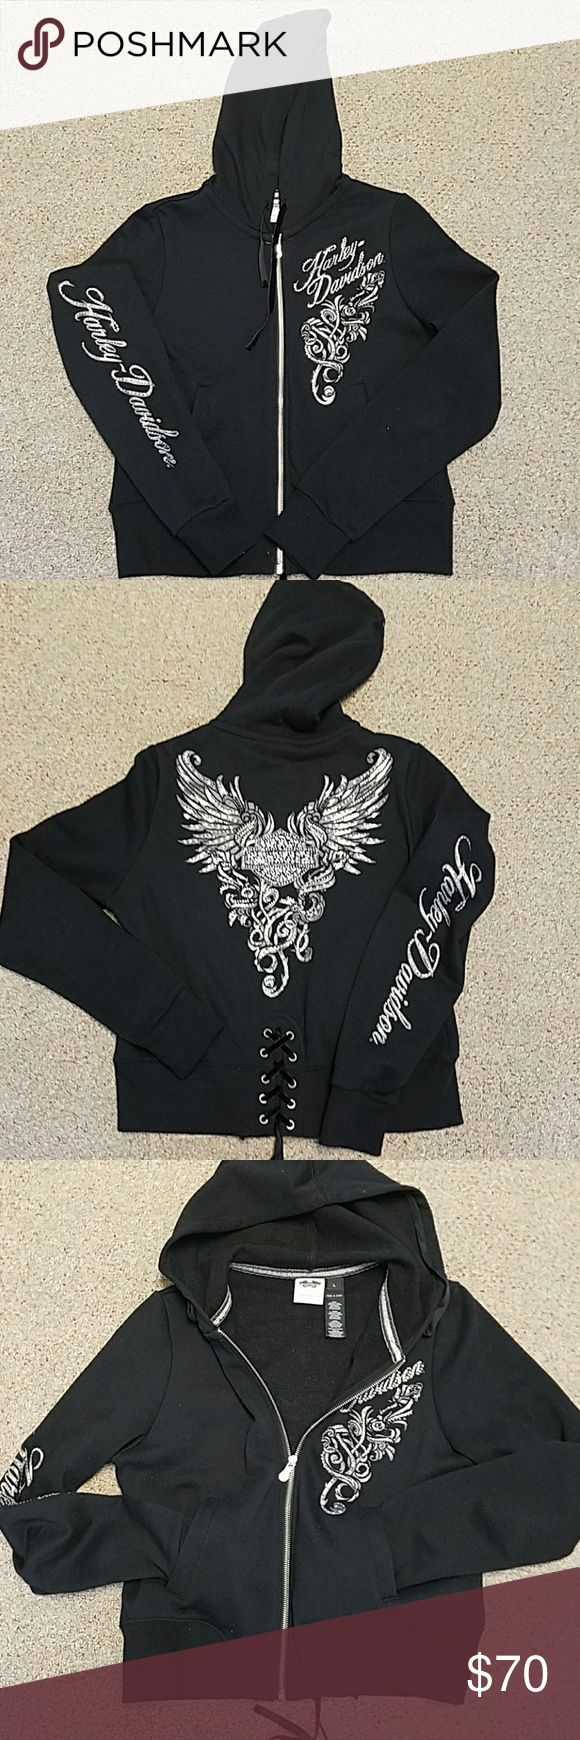 Harley Davidson Sweatshirt Harley Davidson Ladies sweatshirt. Worn once. Zip up hoodie with lacing in back. Bling on right sleeve, back and front.  Really cute.  See pic for length. Harley-Davidson Tops Sweatshirts & Hoodies